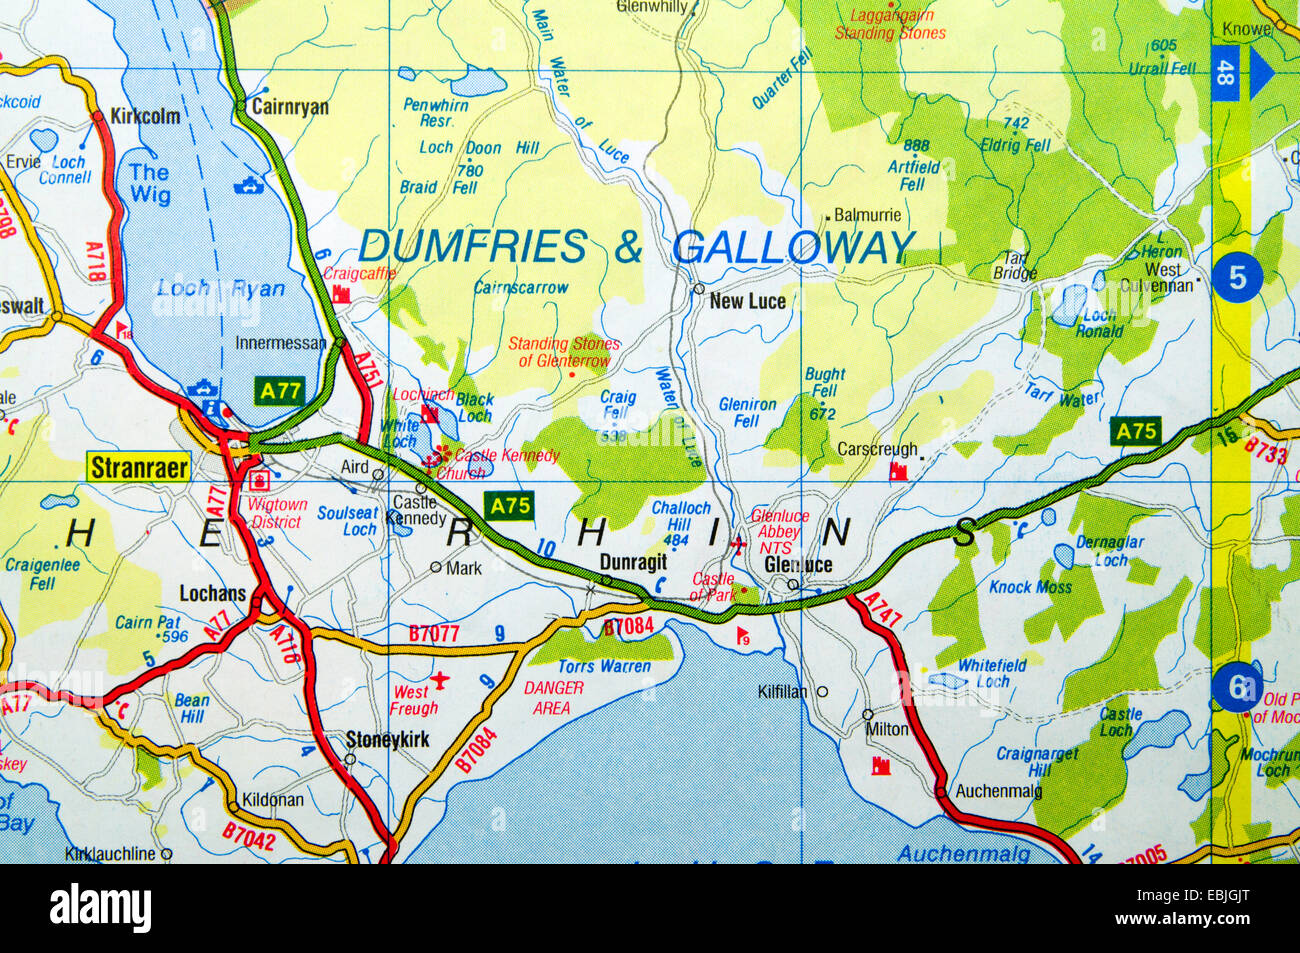 Map Of Dumfries Road Map of Dumfries and Galloway, Scotland Stock Photo: 76010896  Map Of Dumfries